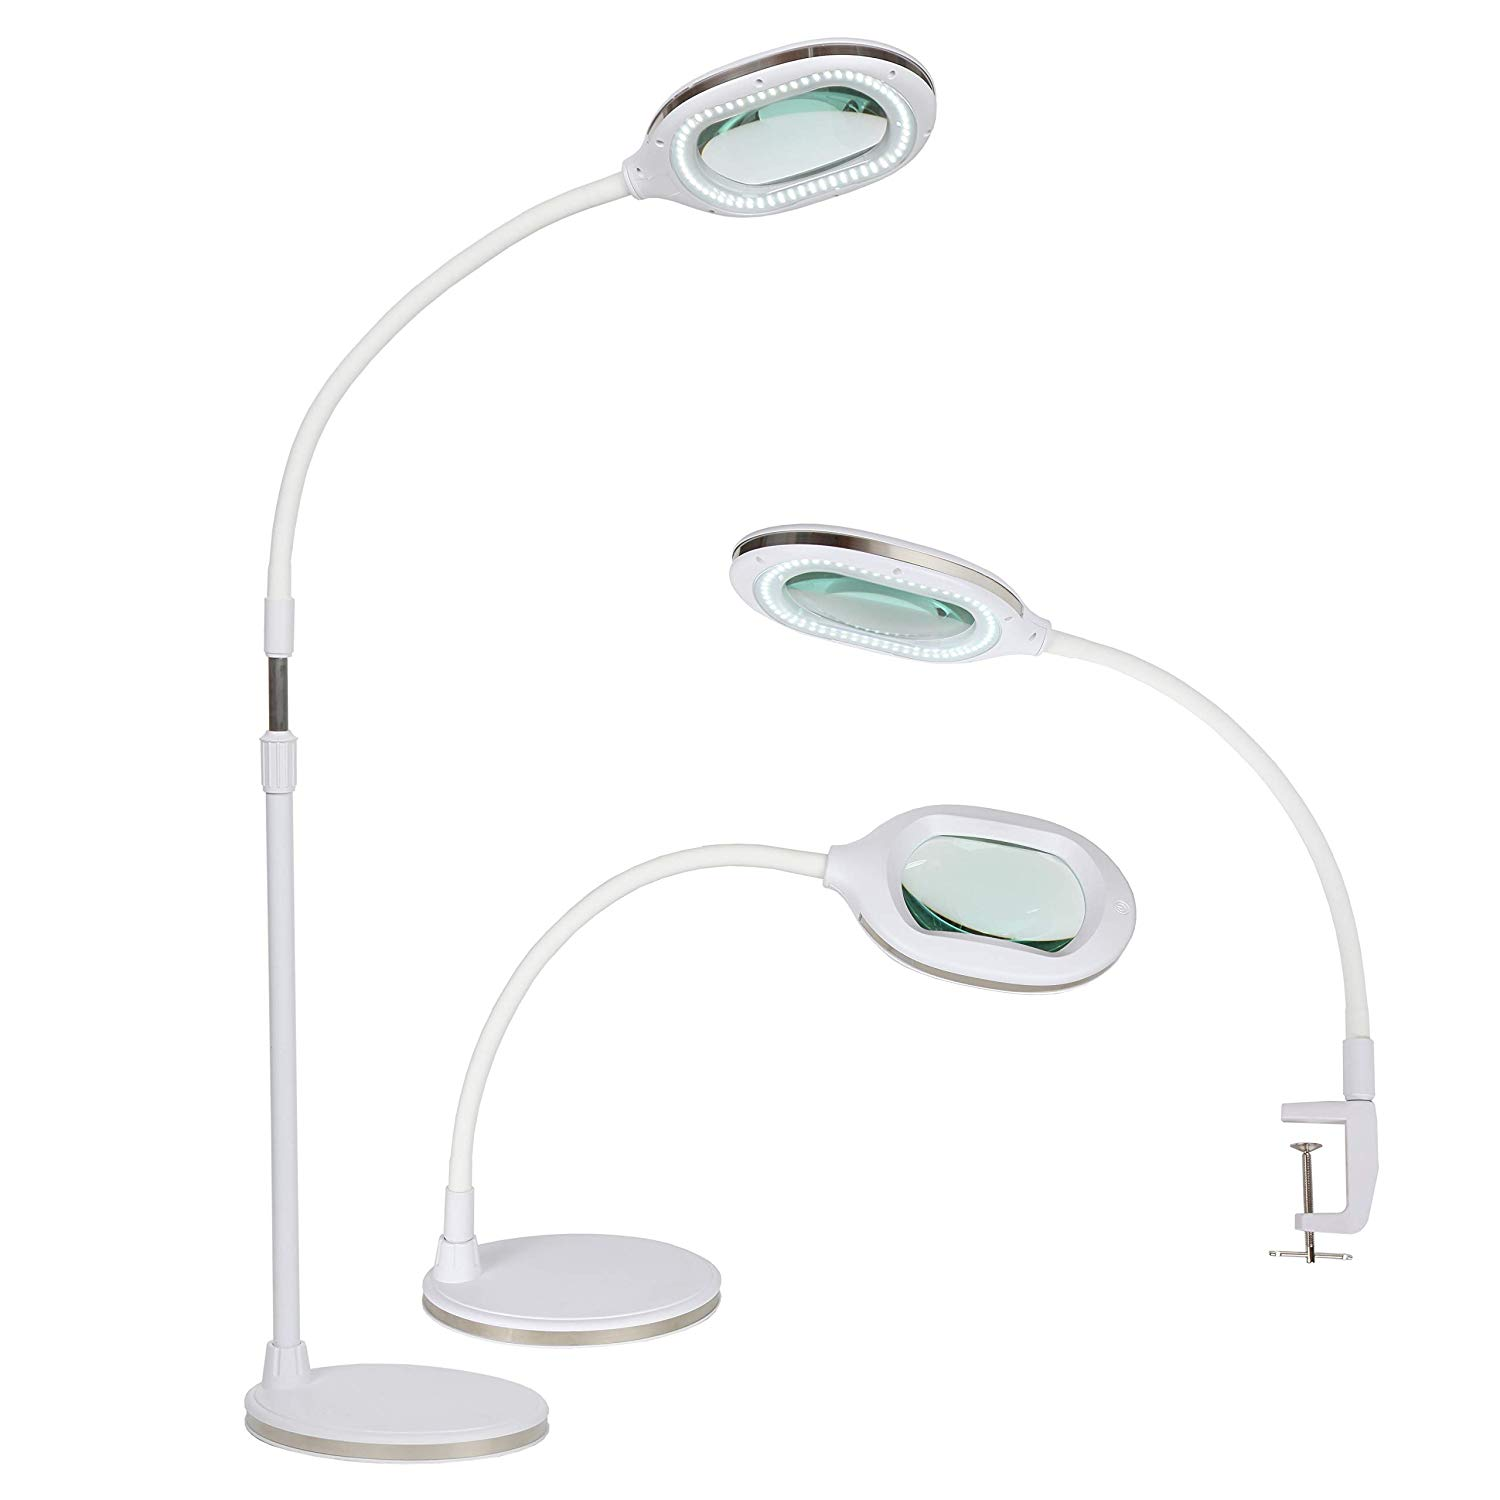 Brightech Lightview Pro 3- in 1 LED Magnifying Glass Floor Lamp- Use as a Table, Floor, or Desk Lamp - Real Diopter Glass Lens – Height Adjustable Gooseneck Standing Light – White